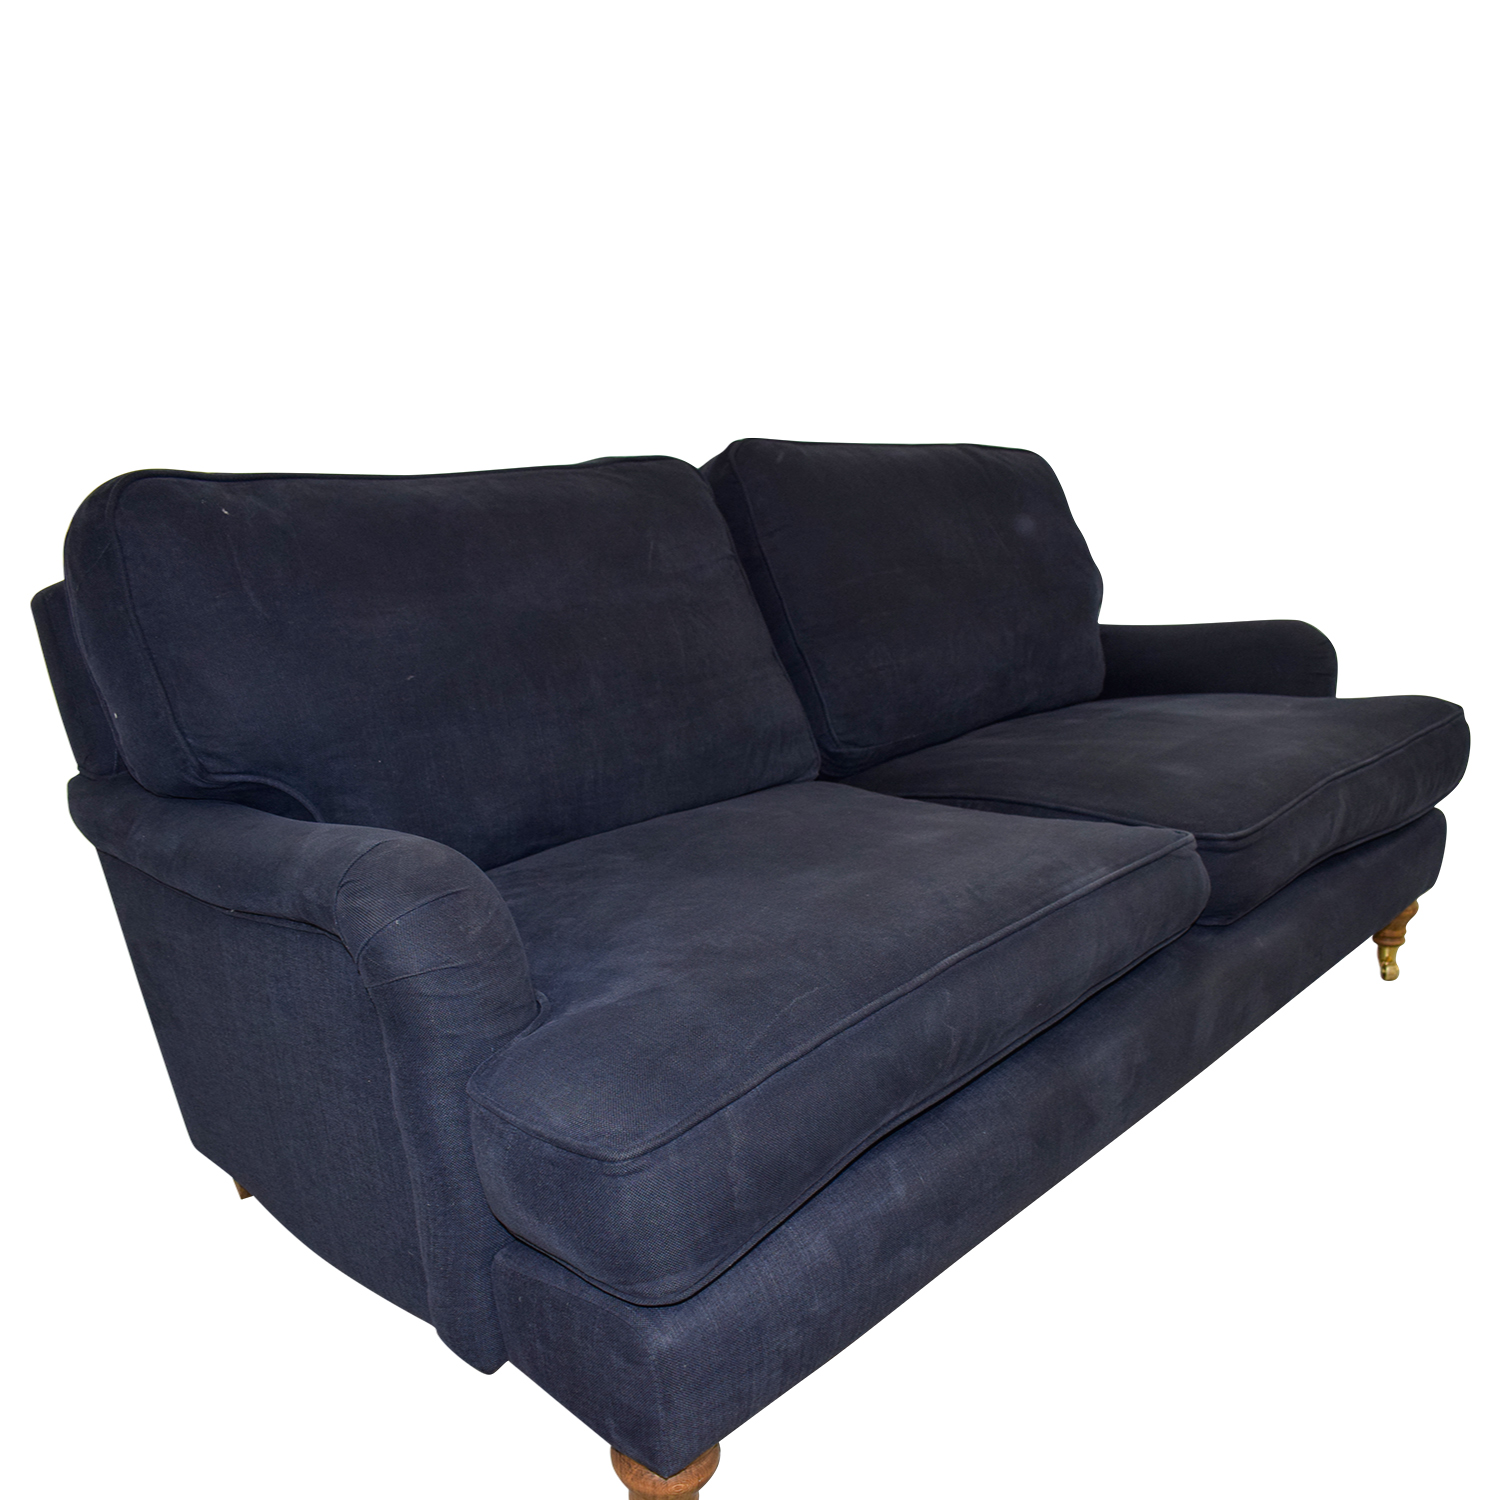 Sofa.com Sofa.com Bluebell Two and a Half Seat Sofa